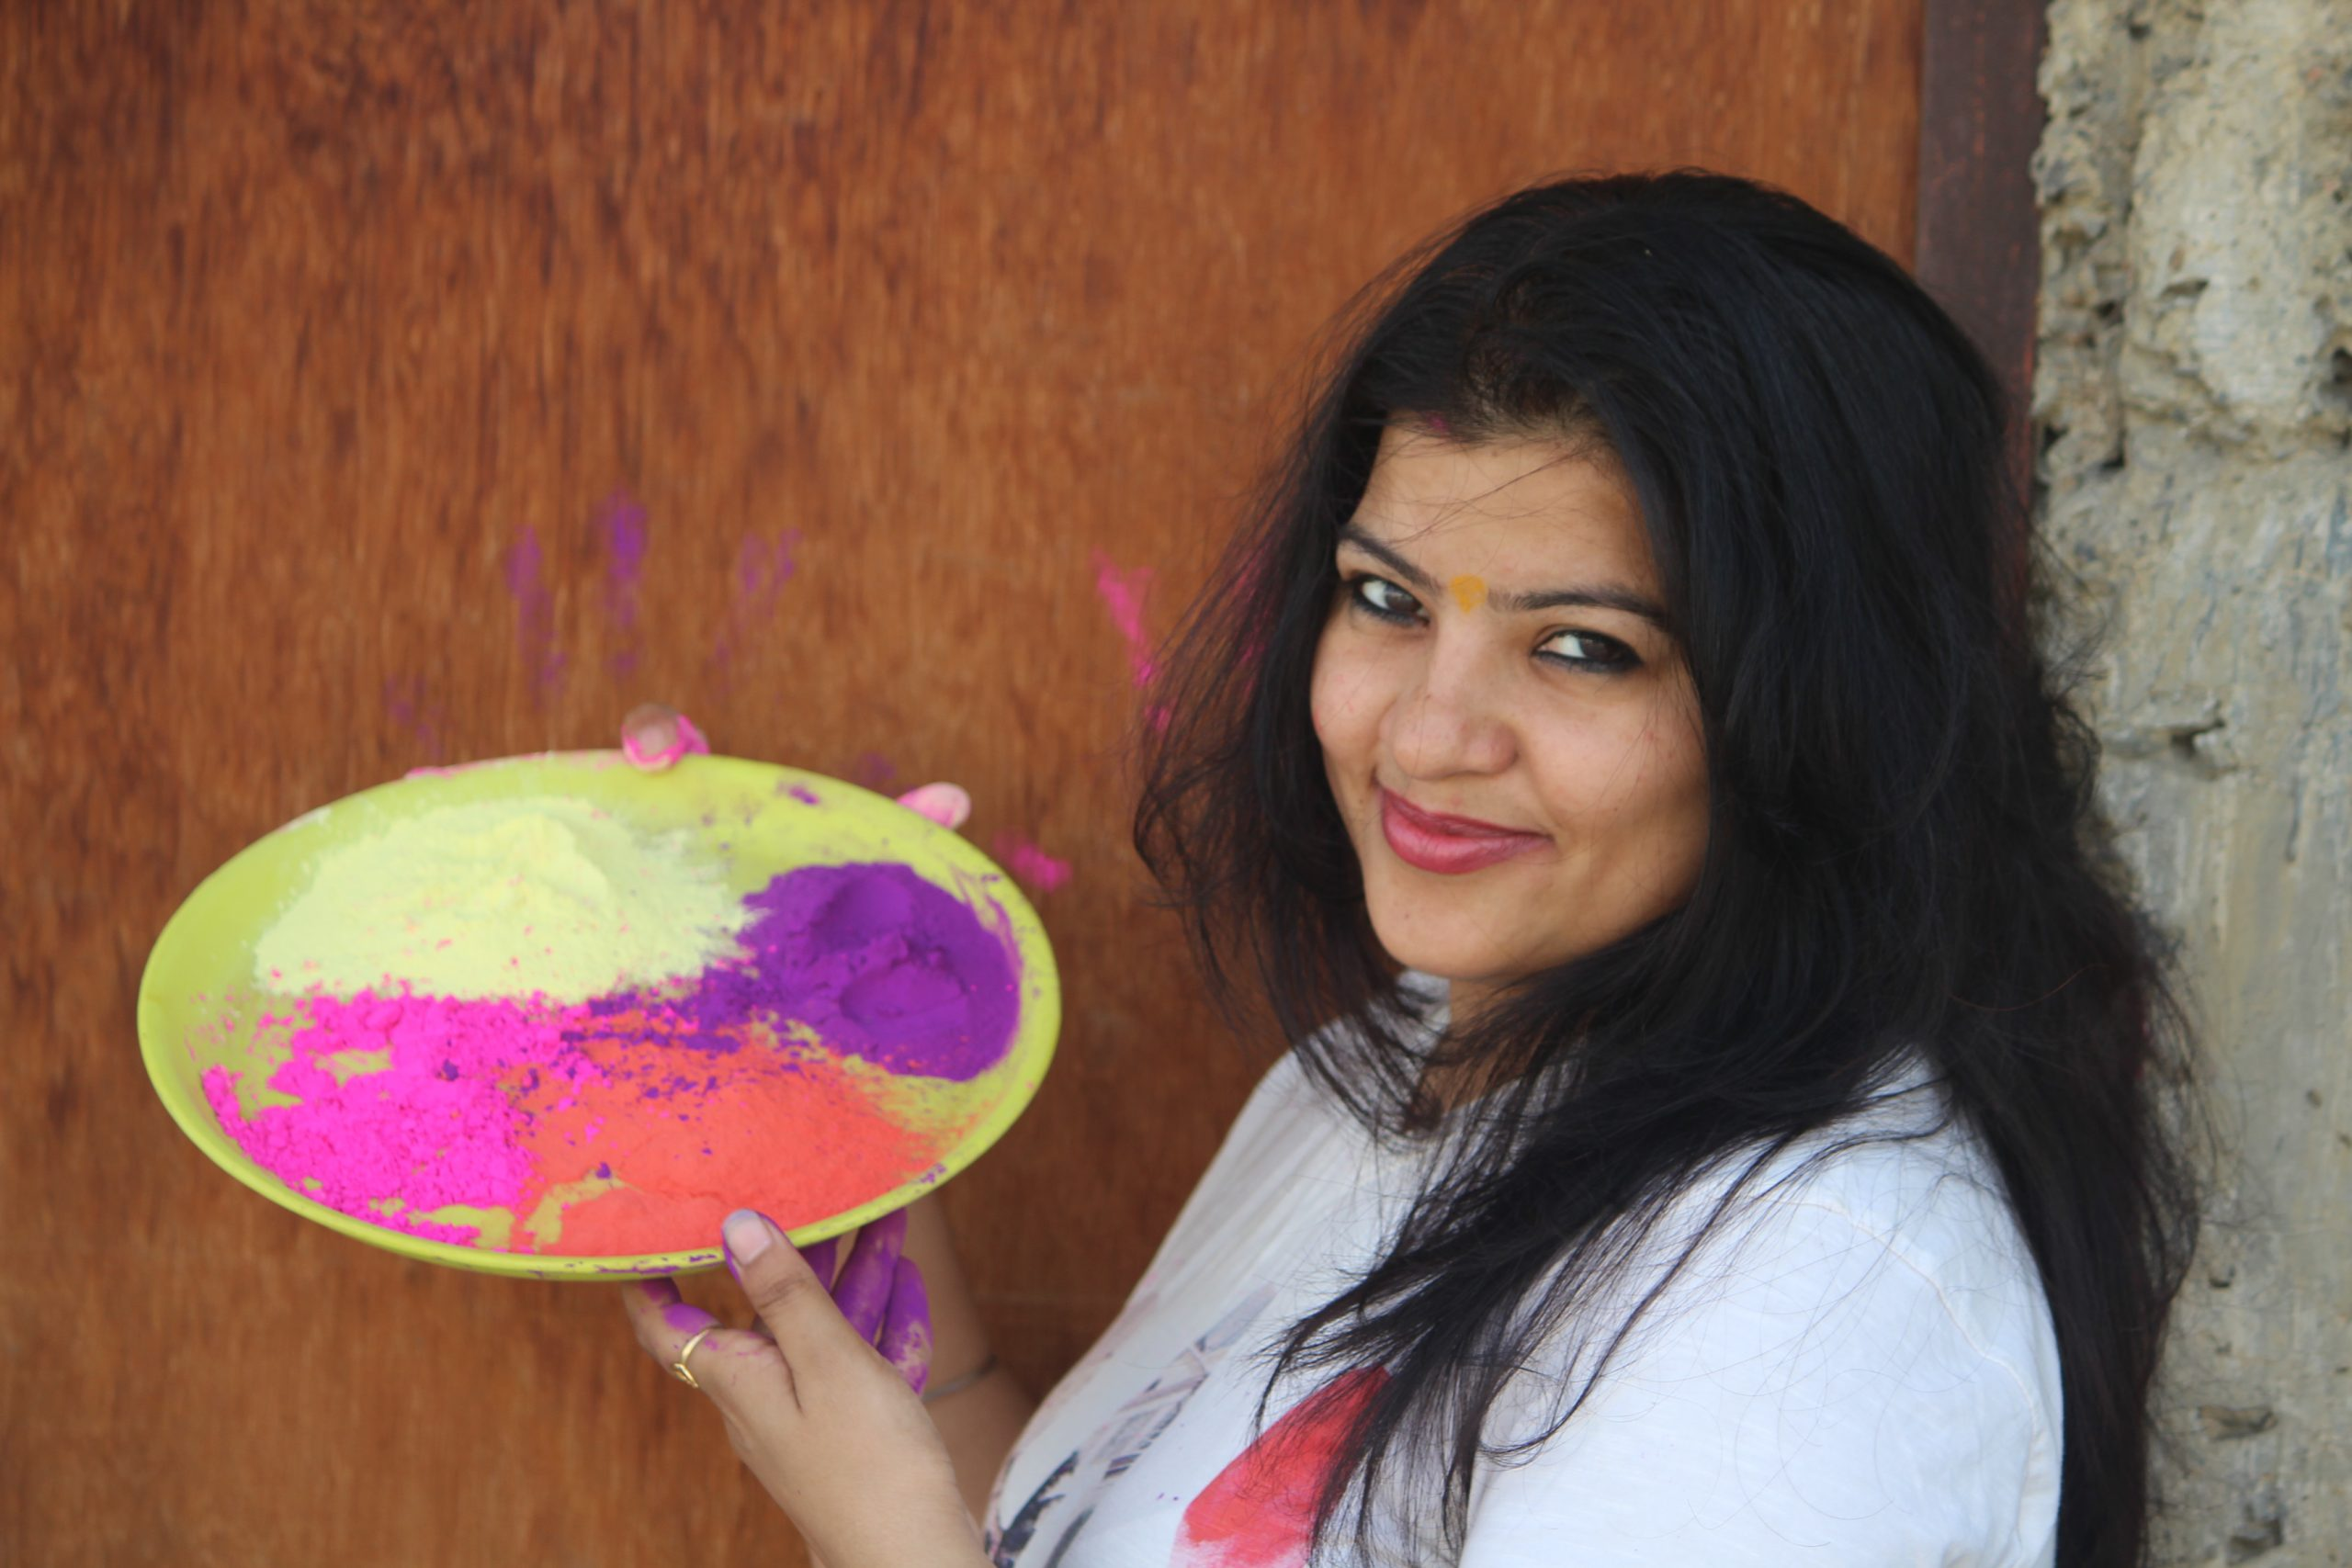 A happy girl holding a tray of holi colors